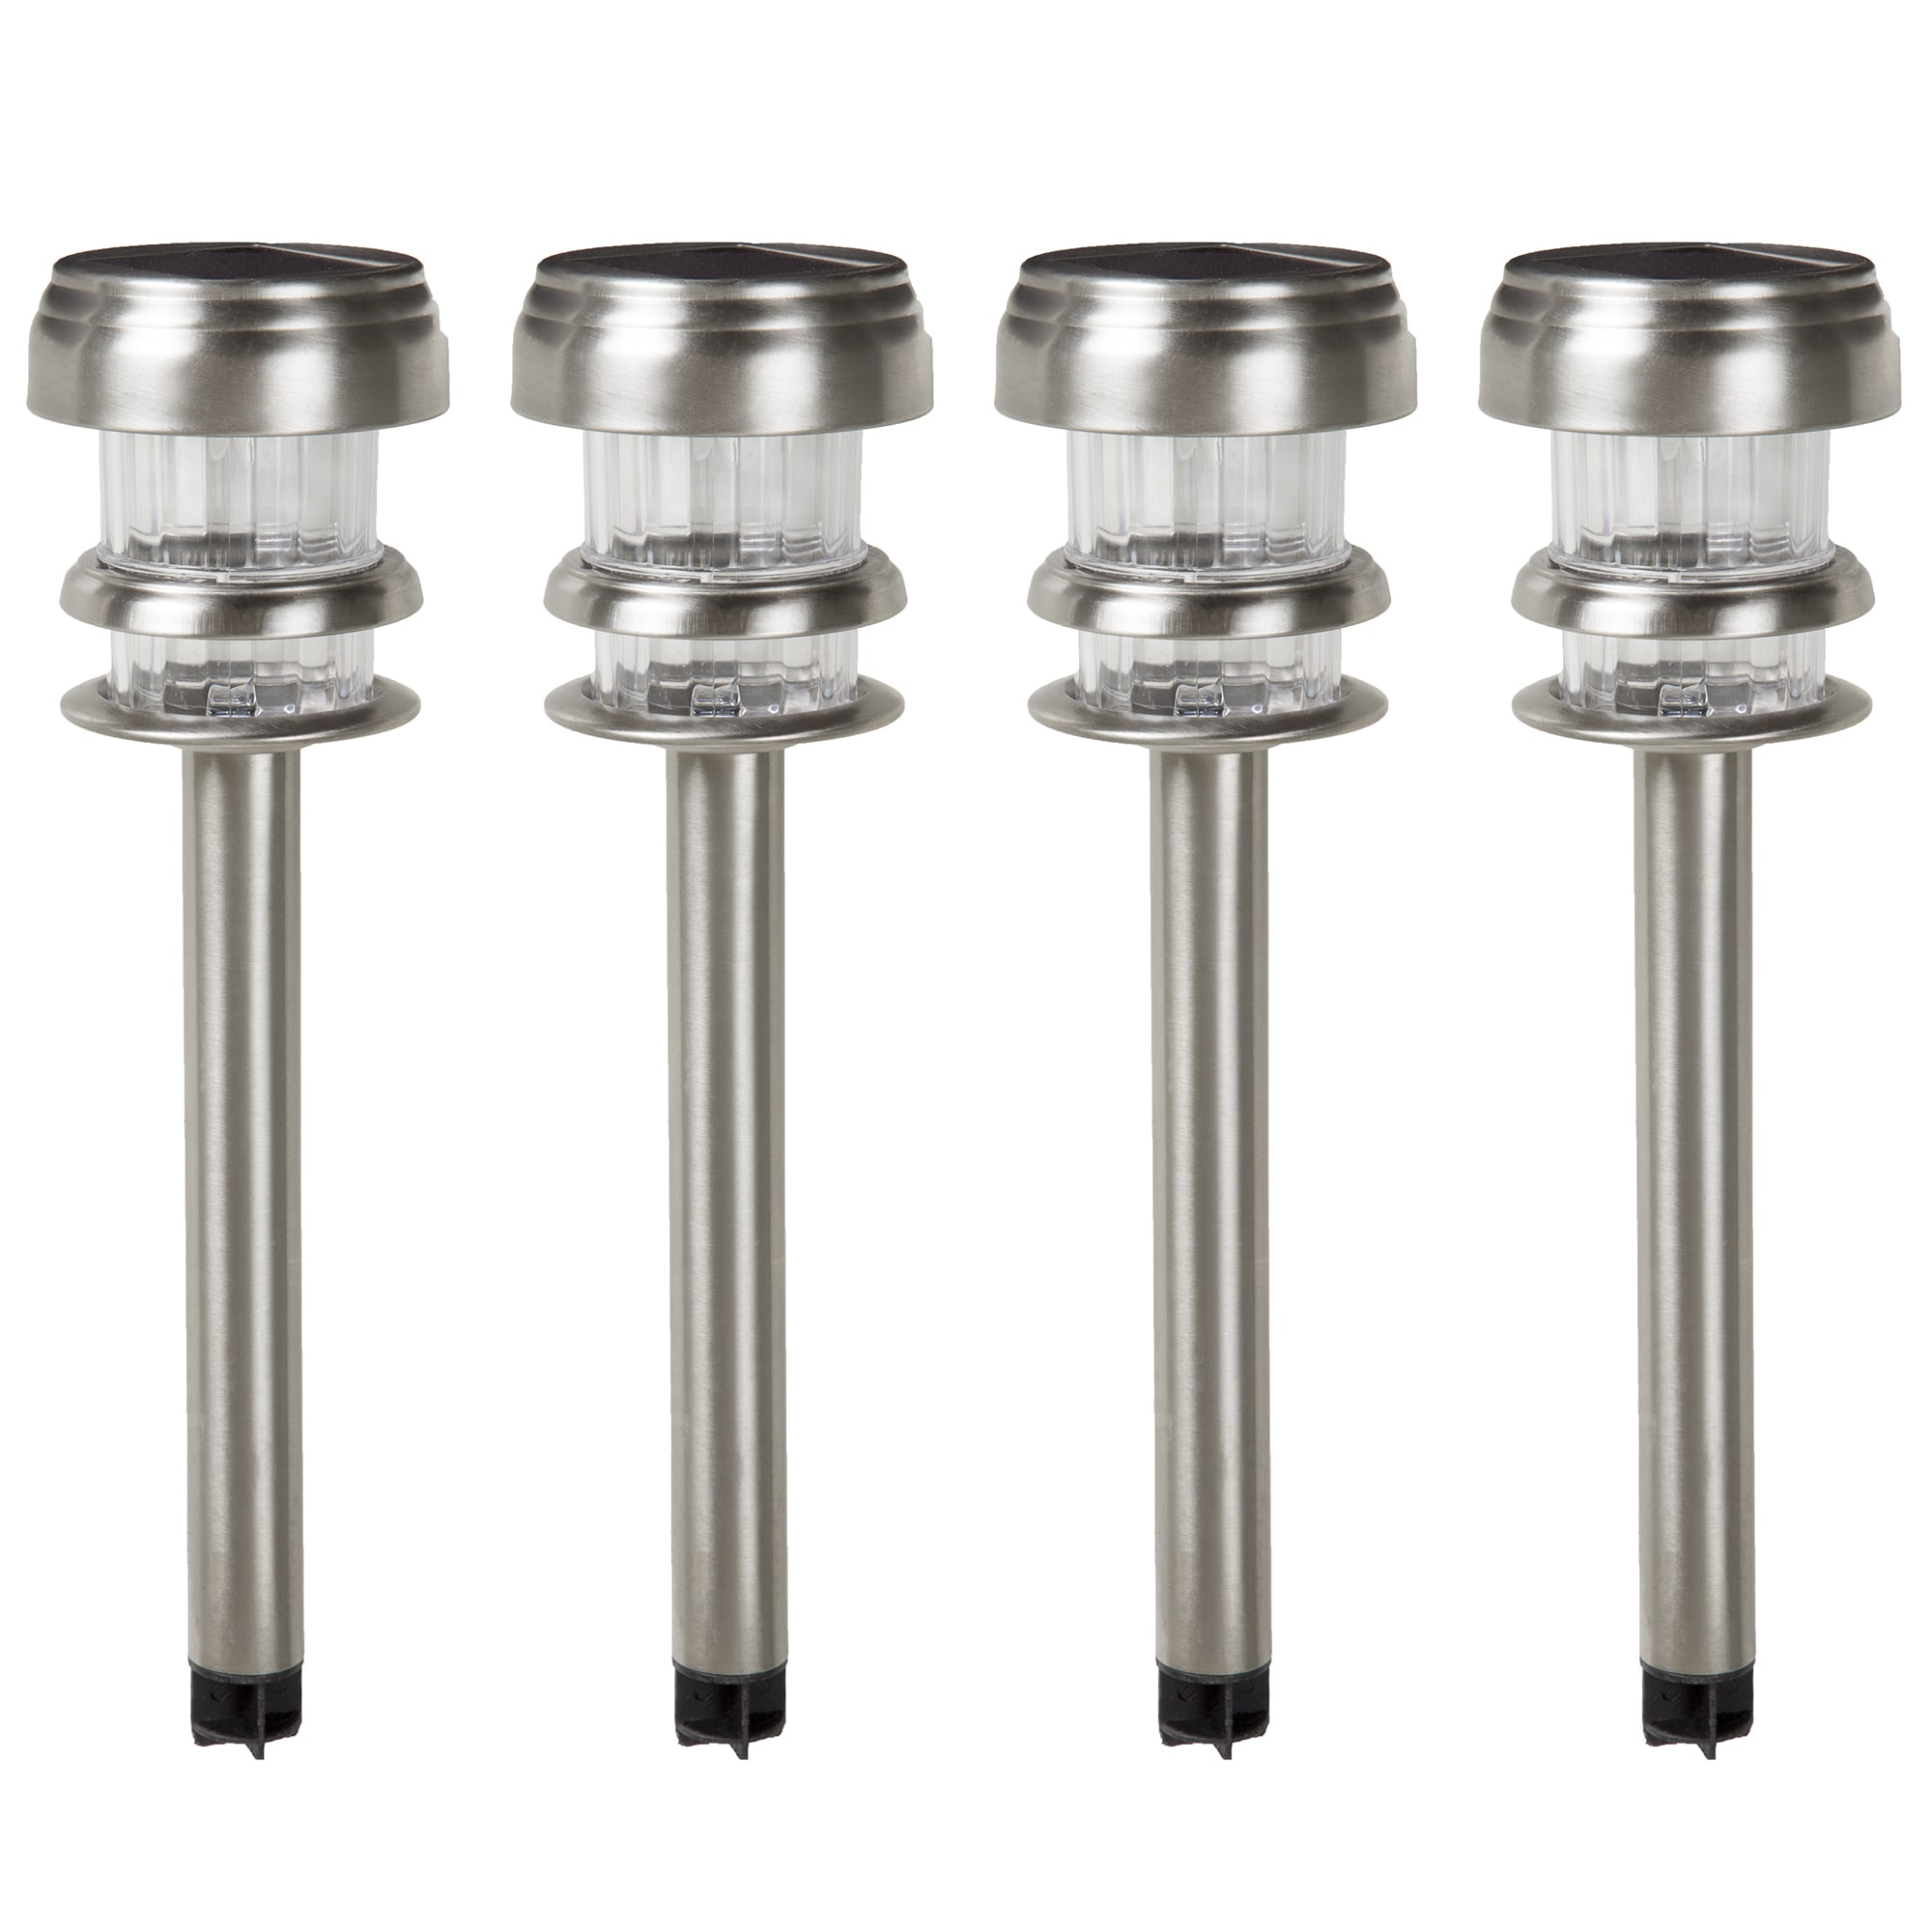 Pure Garden Stainless Steel Solar Ed Led Path Lights Set Of 4 On Free Shipping Orders Over 45 12084734